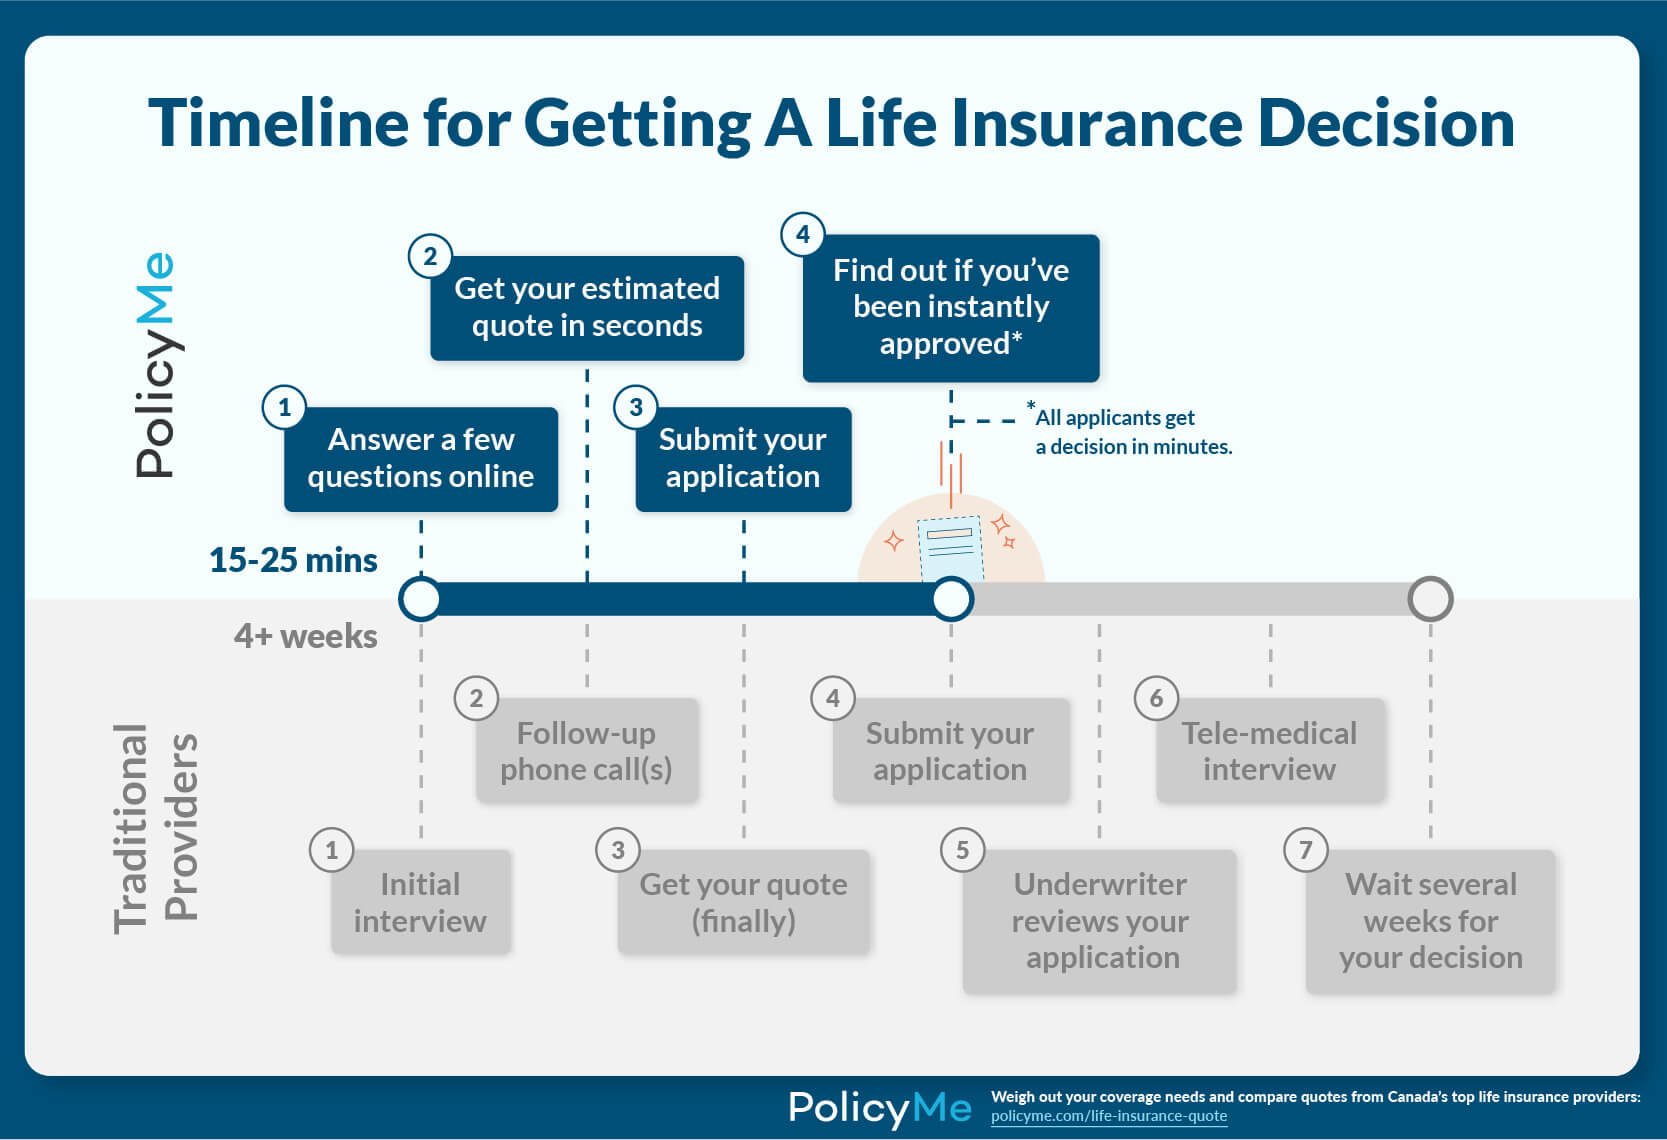 Customers applying for life insurance with PolicyMe get a decision within 15-25 minutes. Some customers get instantly approved. With traditional insurance providers, the wait time to get a decision can be over 4 weeks.